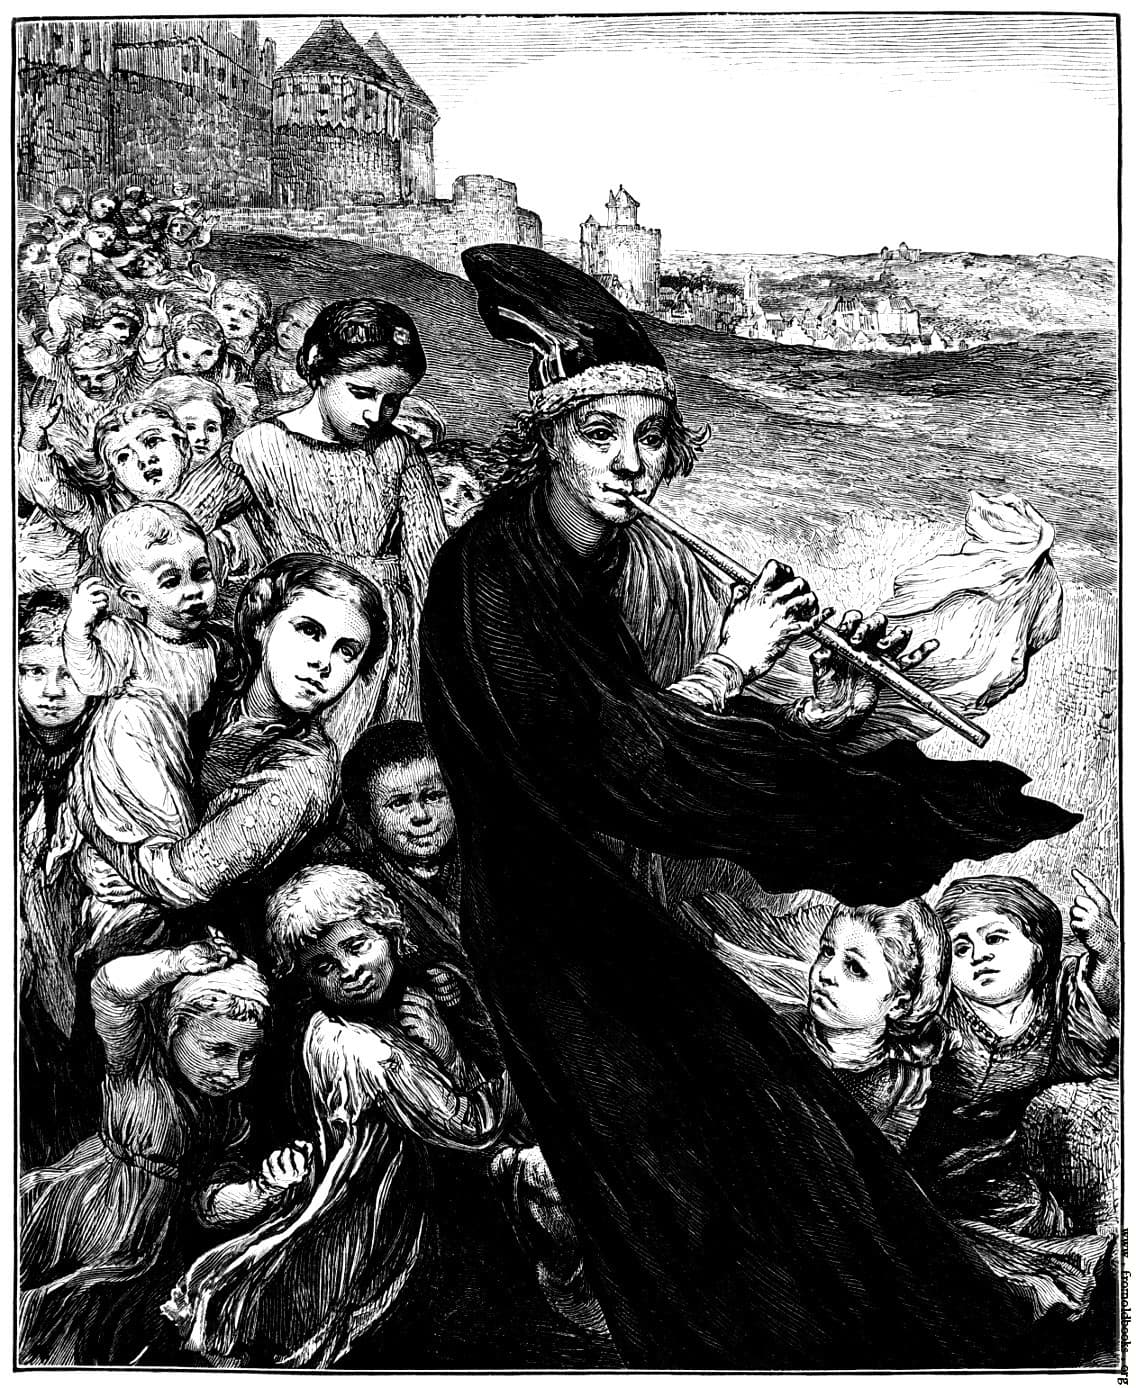 083-the-pied-piper-of-hamelin-q90-1136x1388